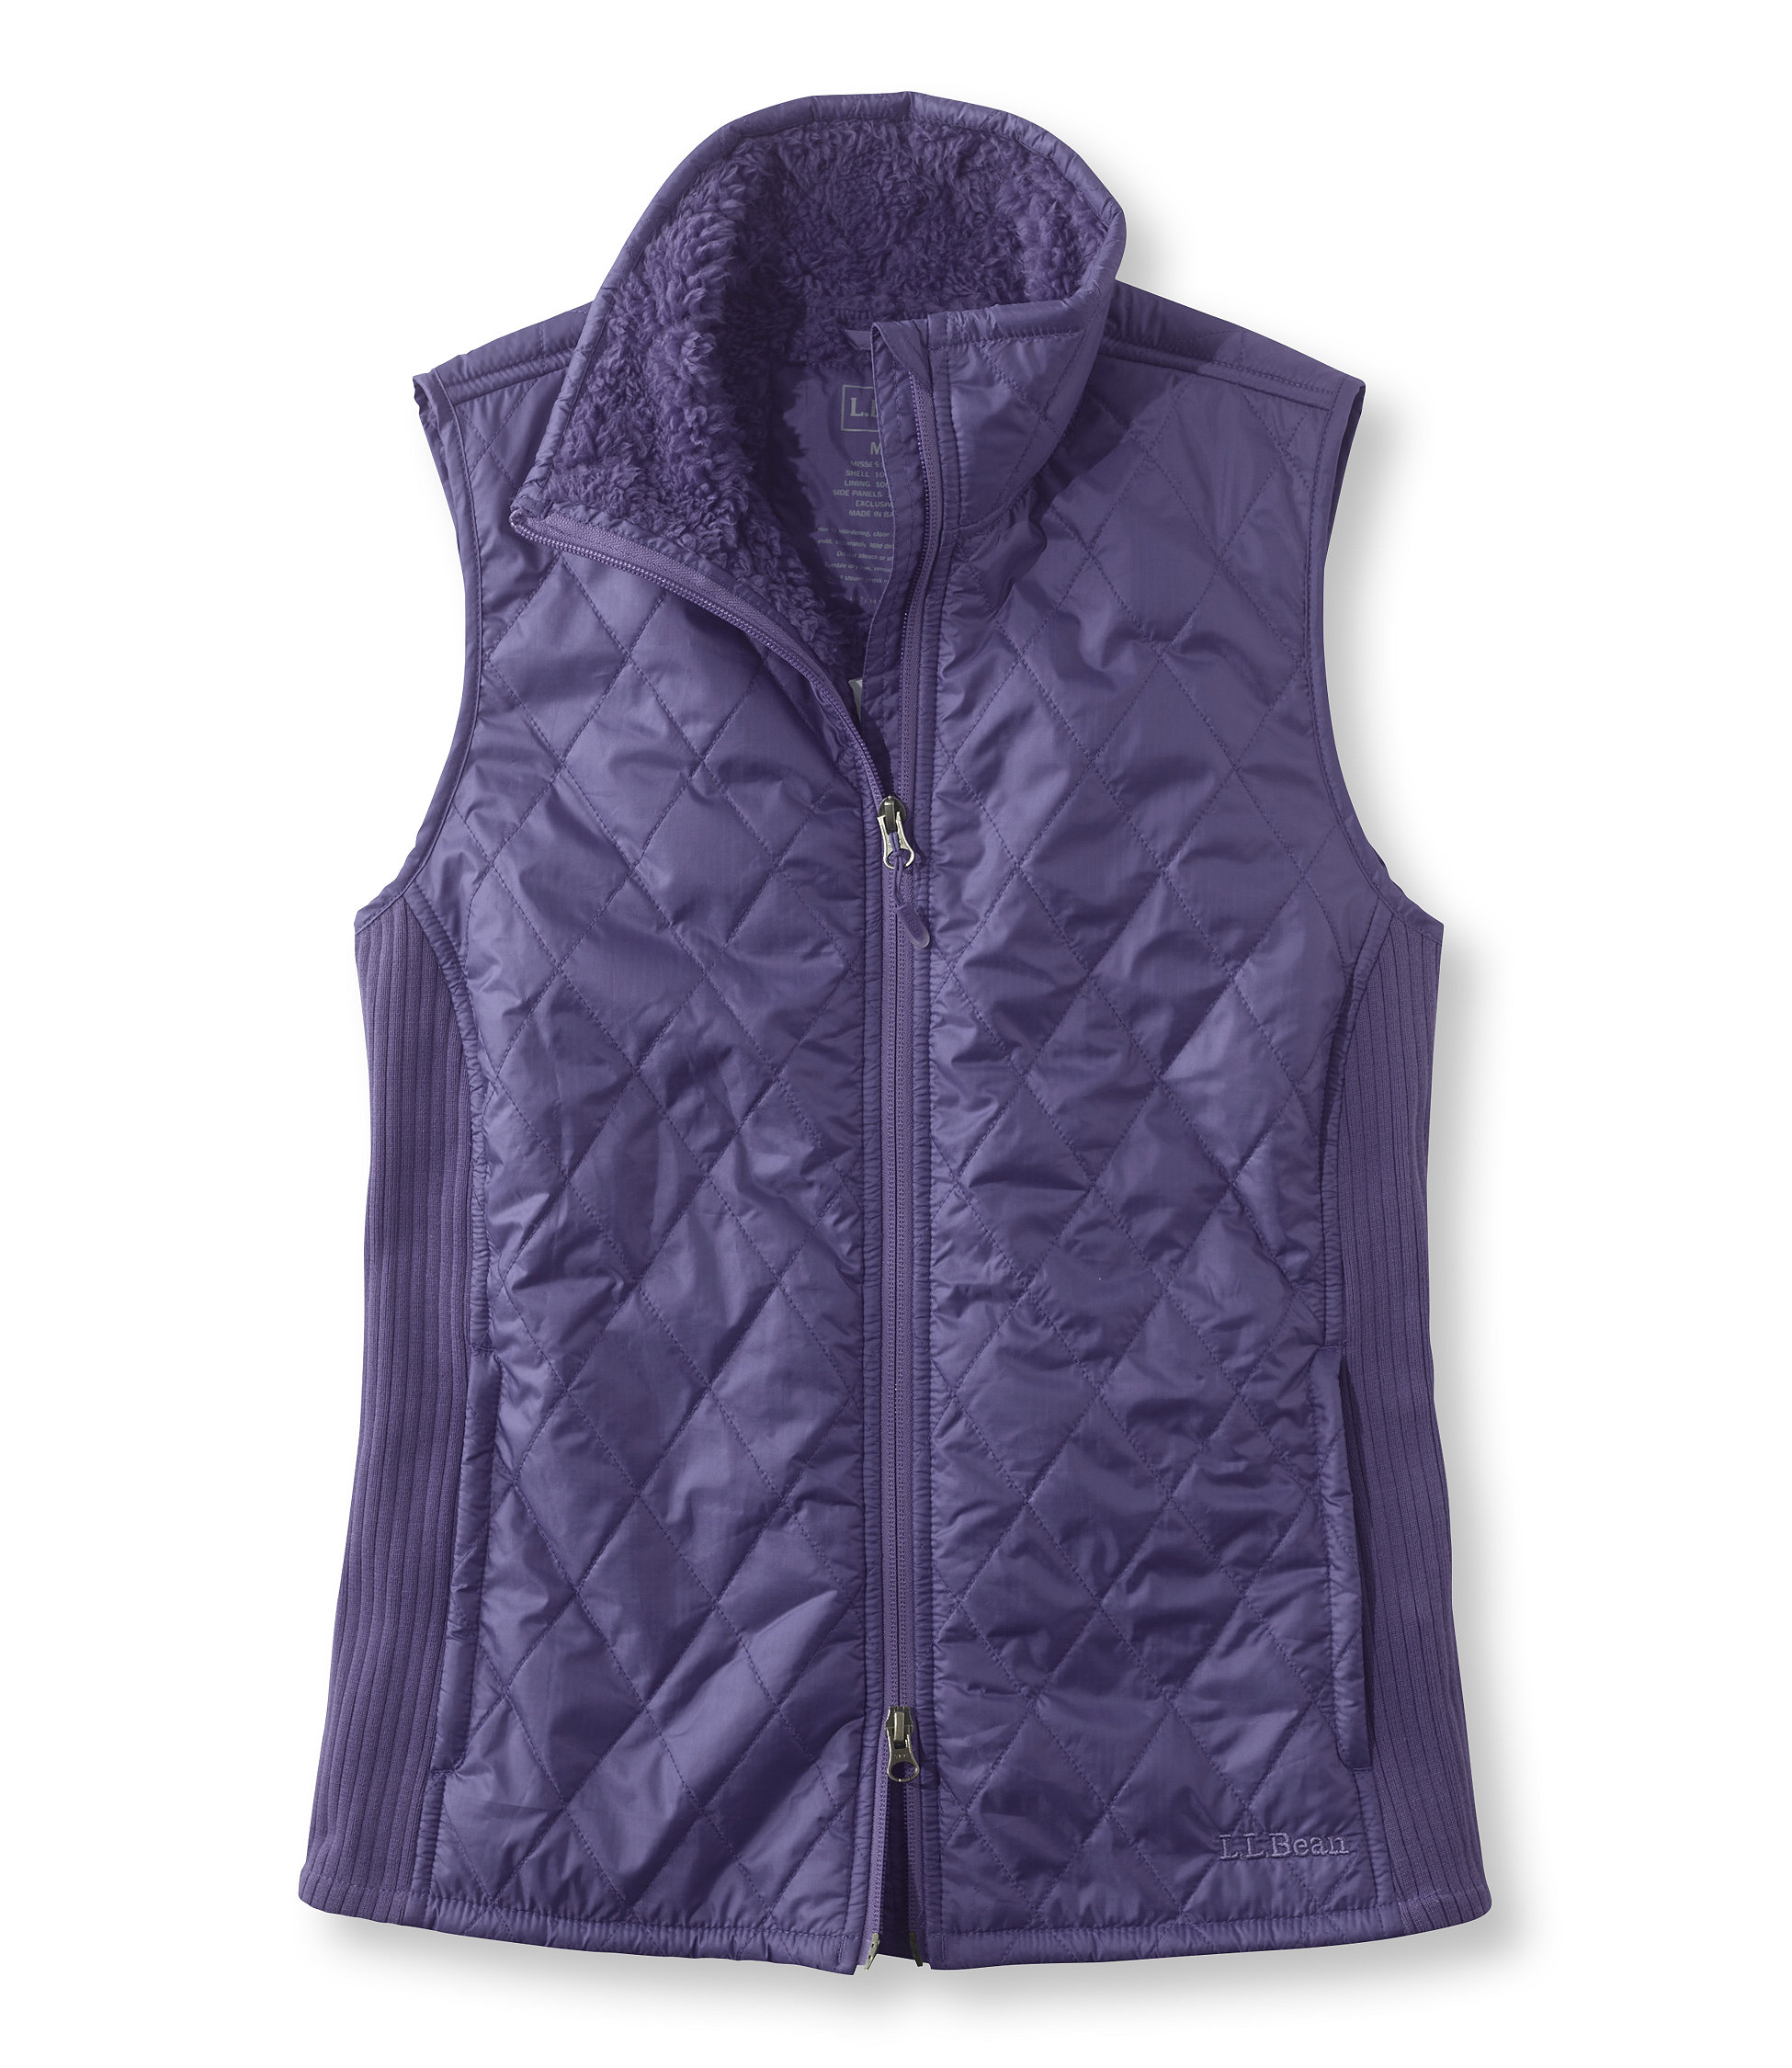 L.L.Bean Fleece-Lined Fitness Vest